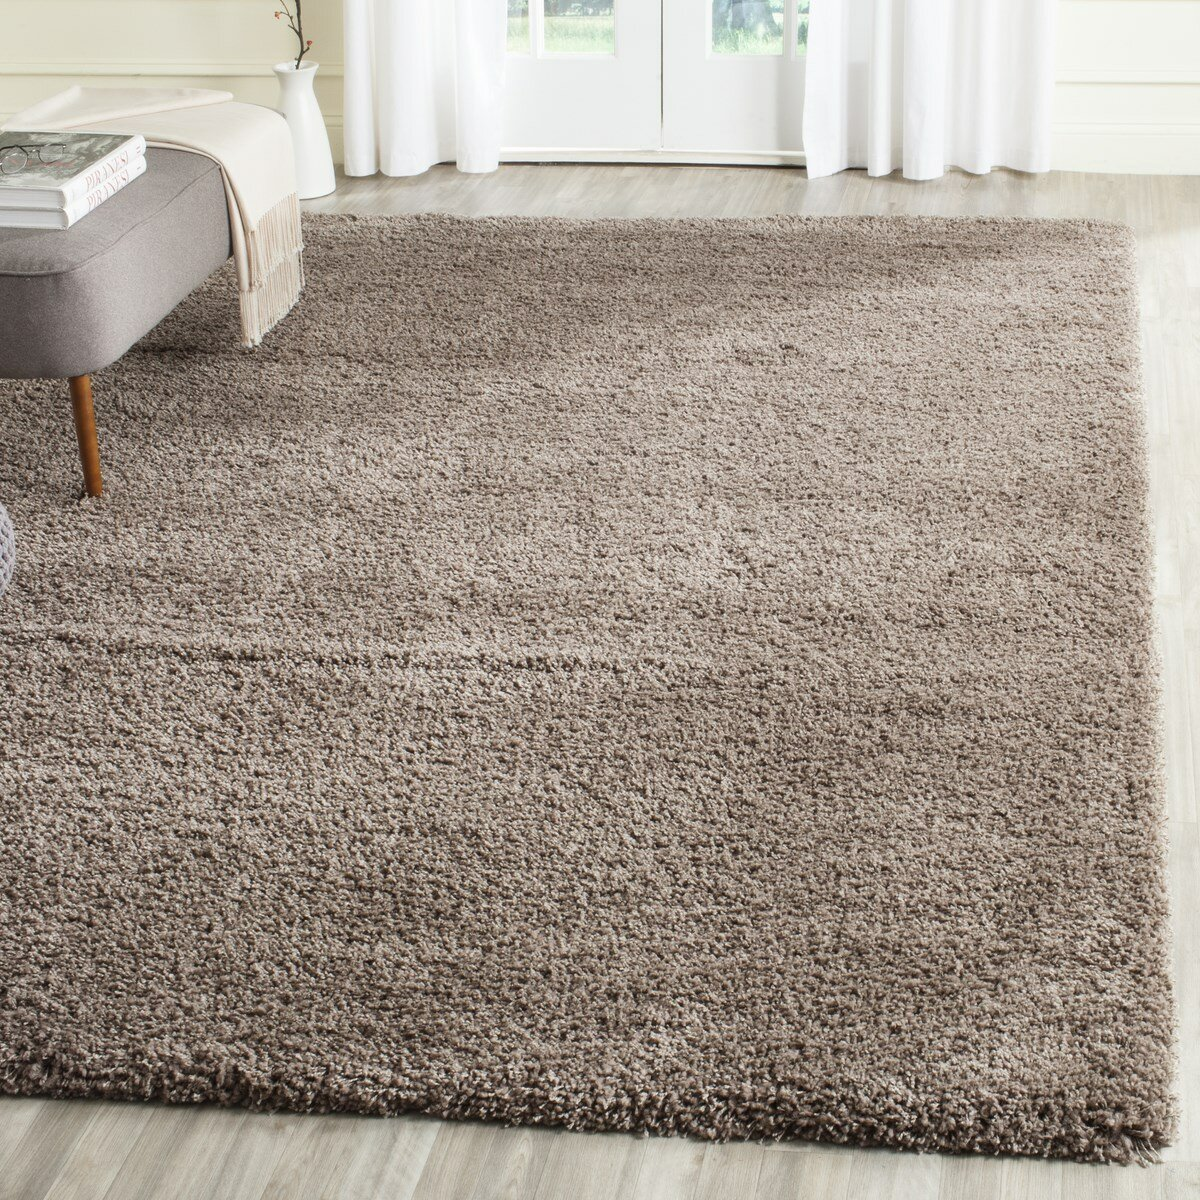 Area Rug In Bedroom Safavieh Shag Taupe Area Rug Amp Reviews Wayfair